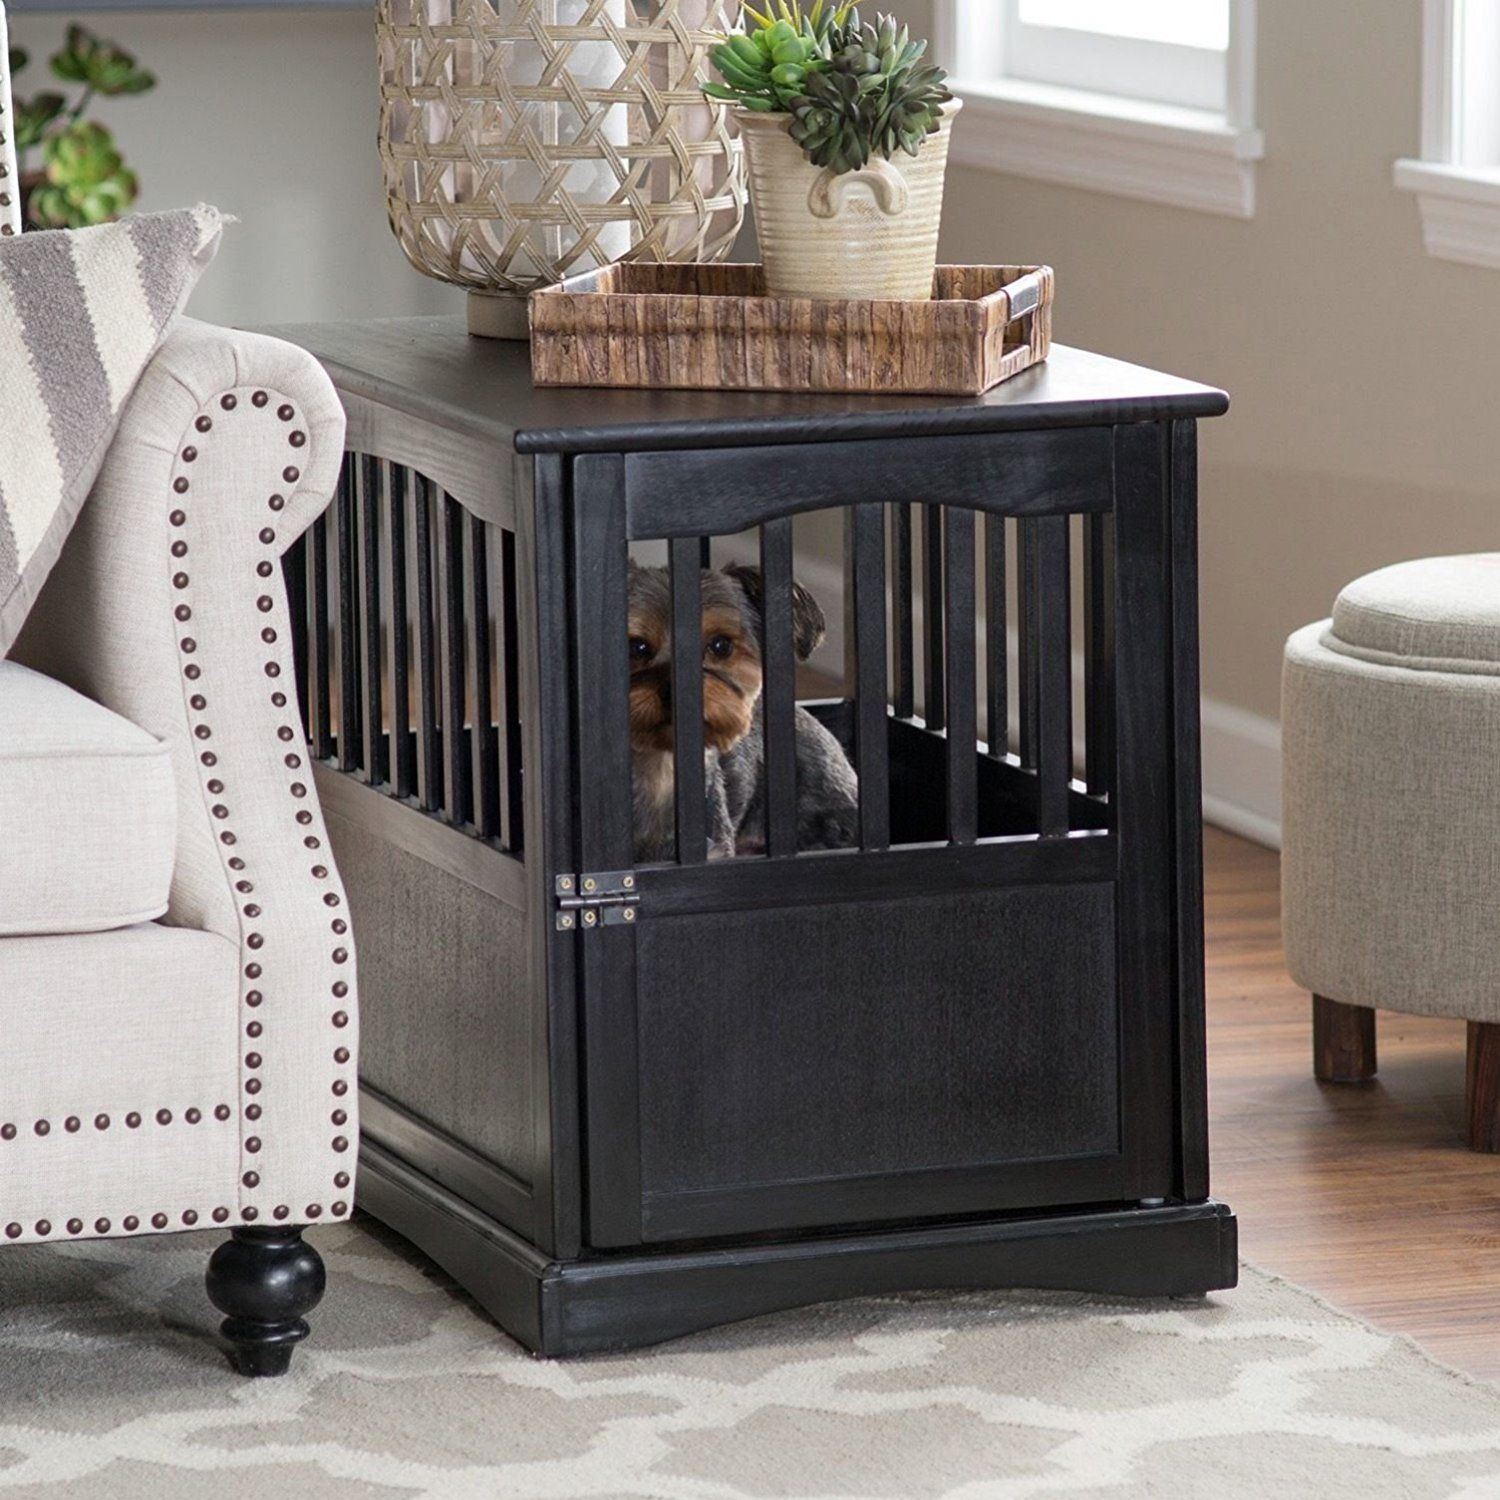 dog crate furniture end table decorative crates that look like tables kennel high bedside inch wide wall colors with brown leather mermaid and dolphin coffee sauder bedroom set